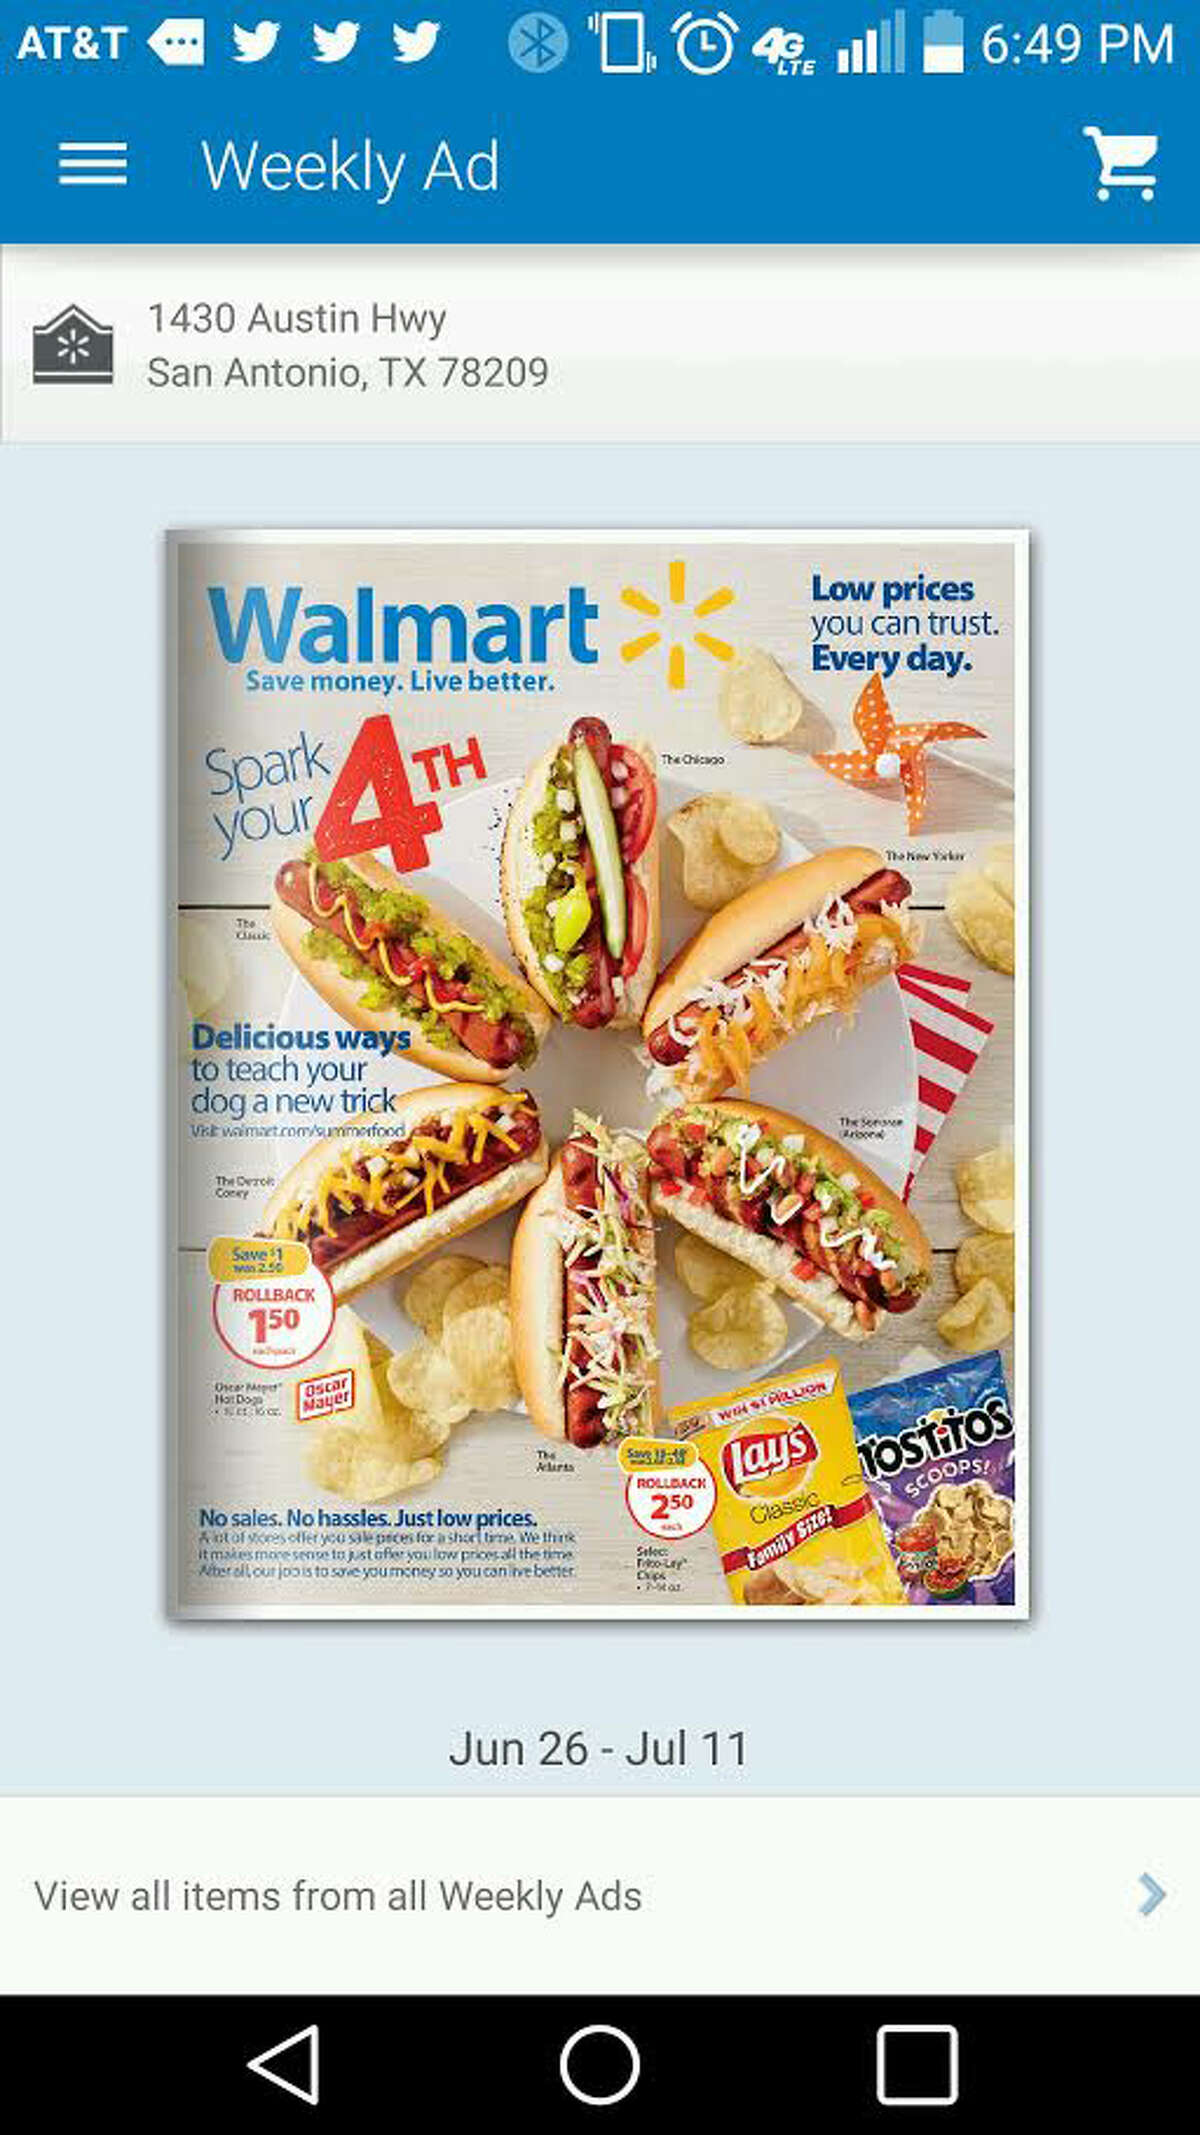 Walmart's smartphone app includes, among other things, weekly ads and a